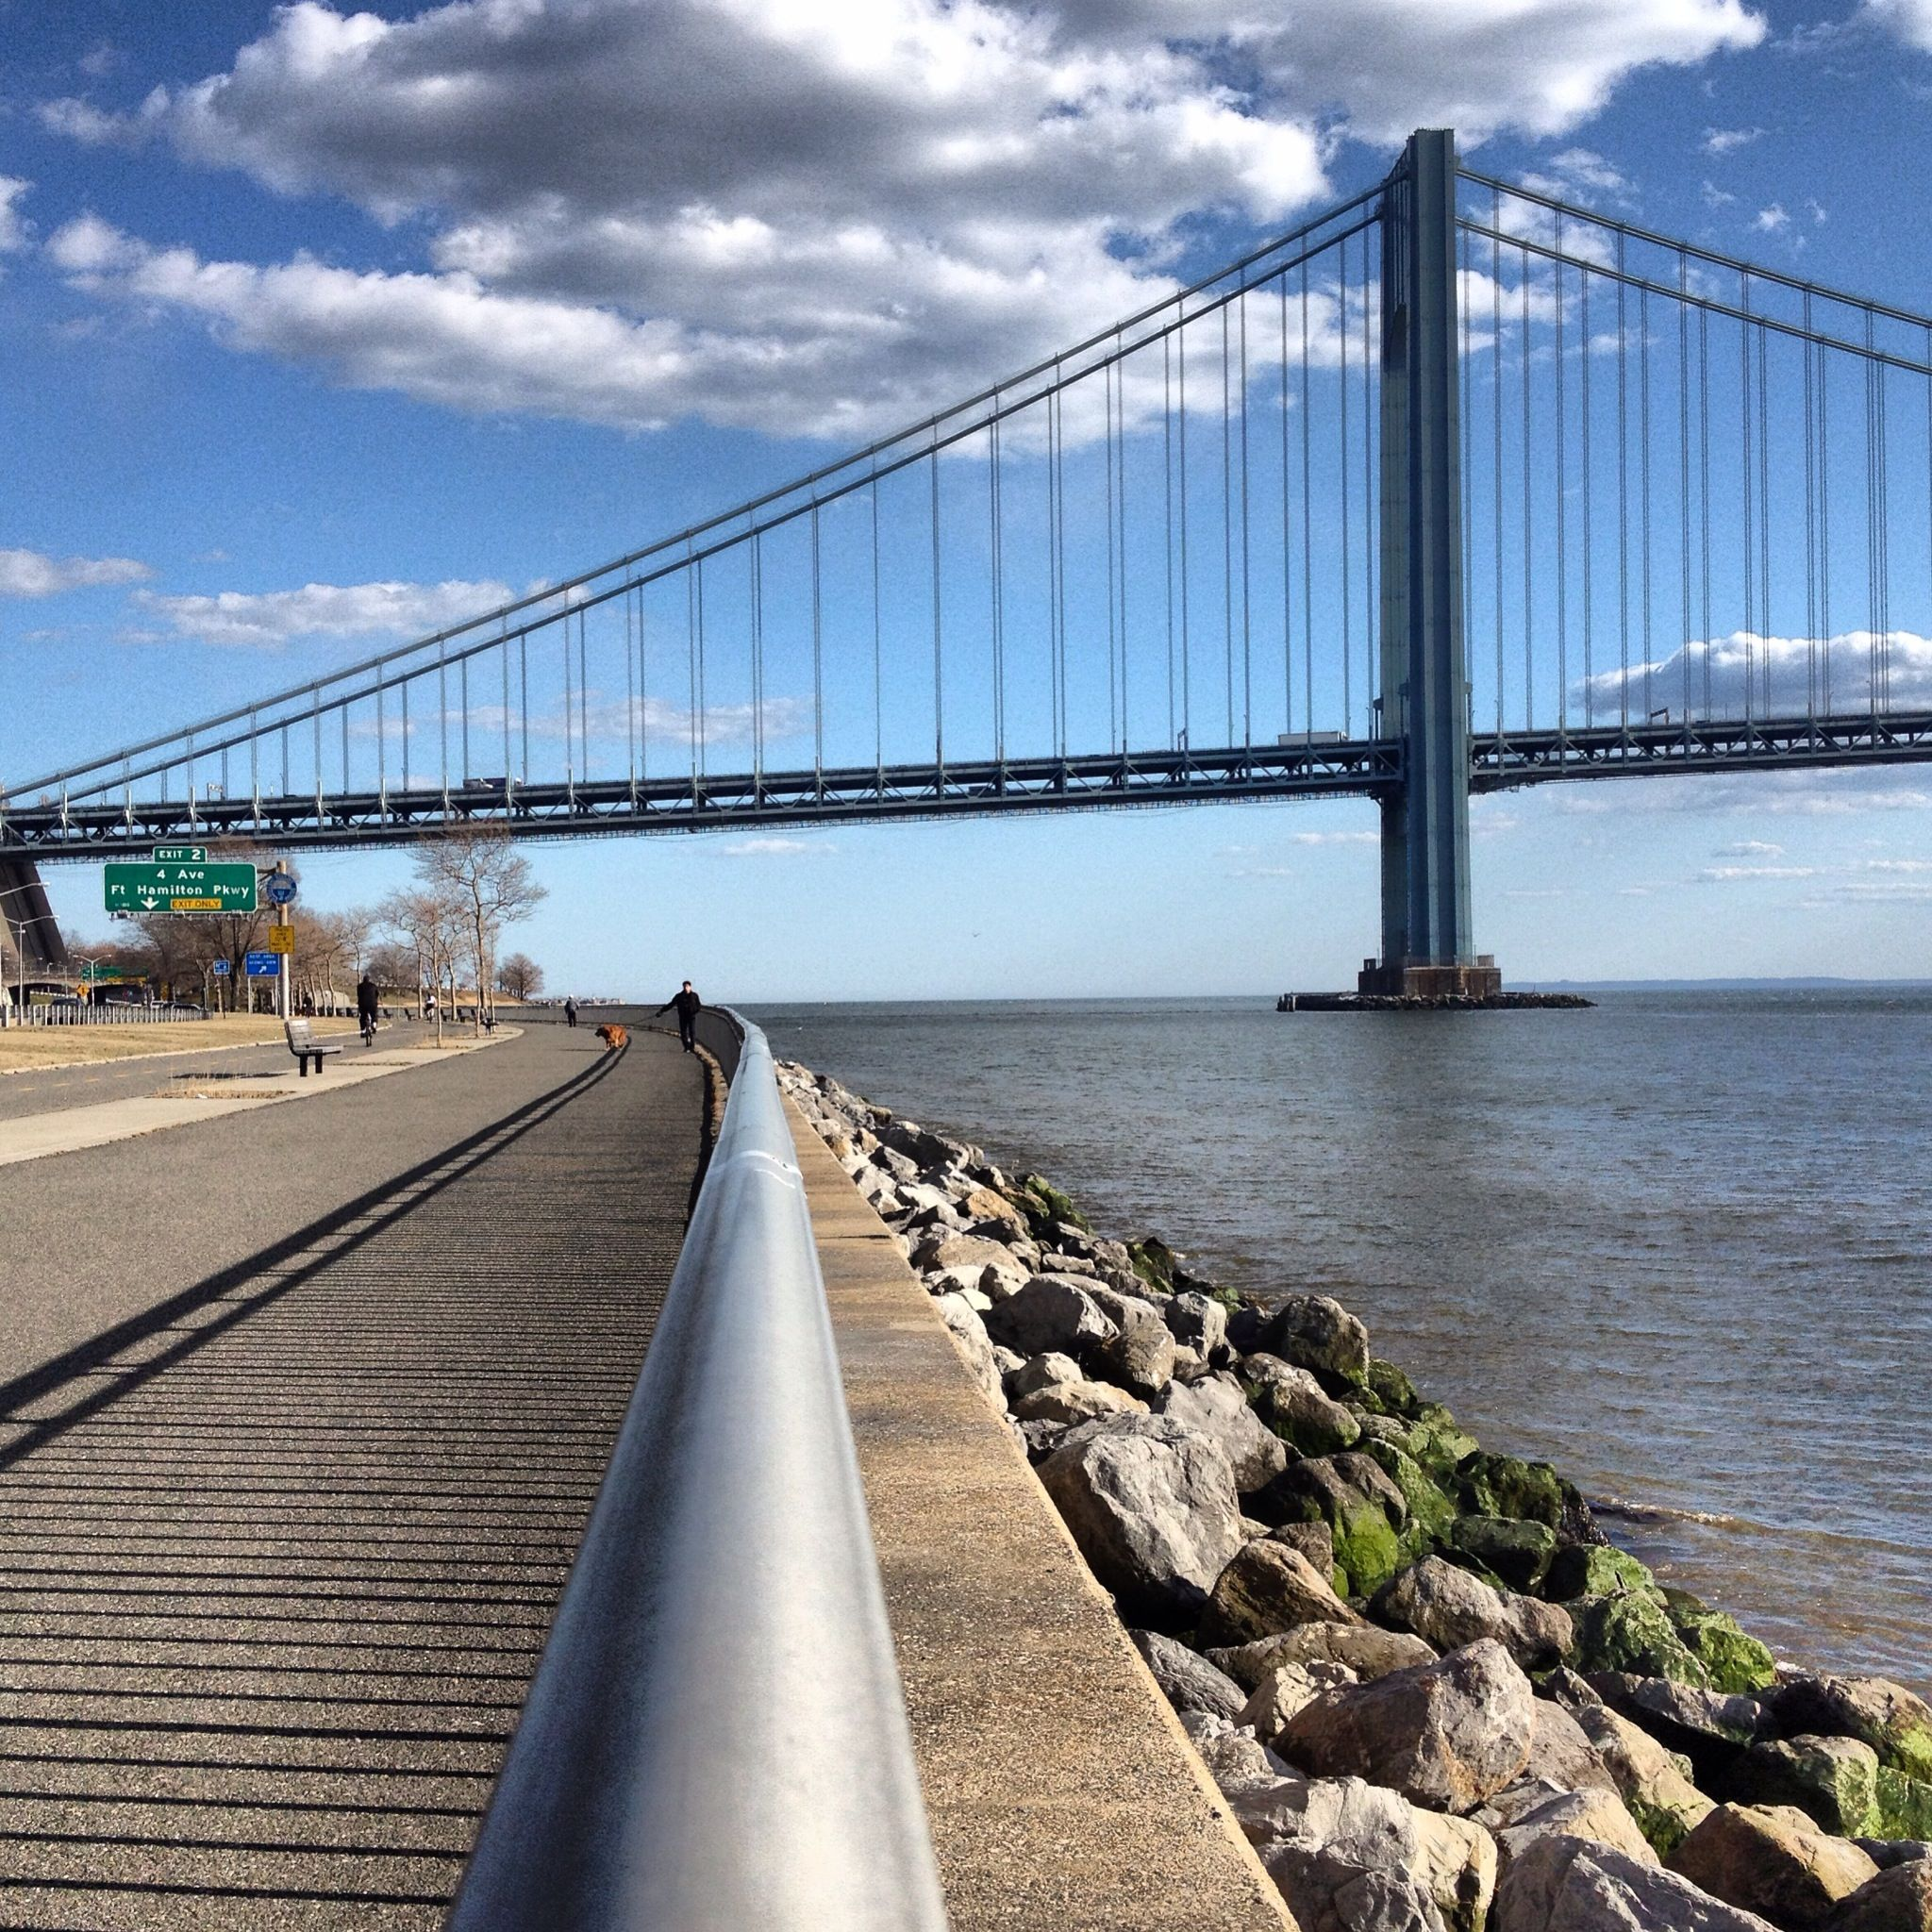 Brooklyn Staten Island Car Leasing Dealer: Shore Promenade, Bay Ridge, Brooklyn, NY